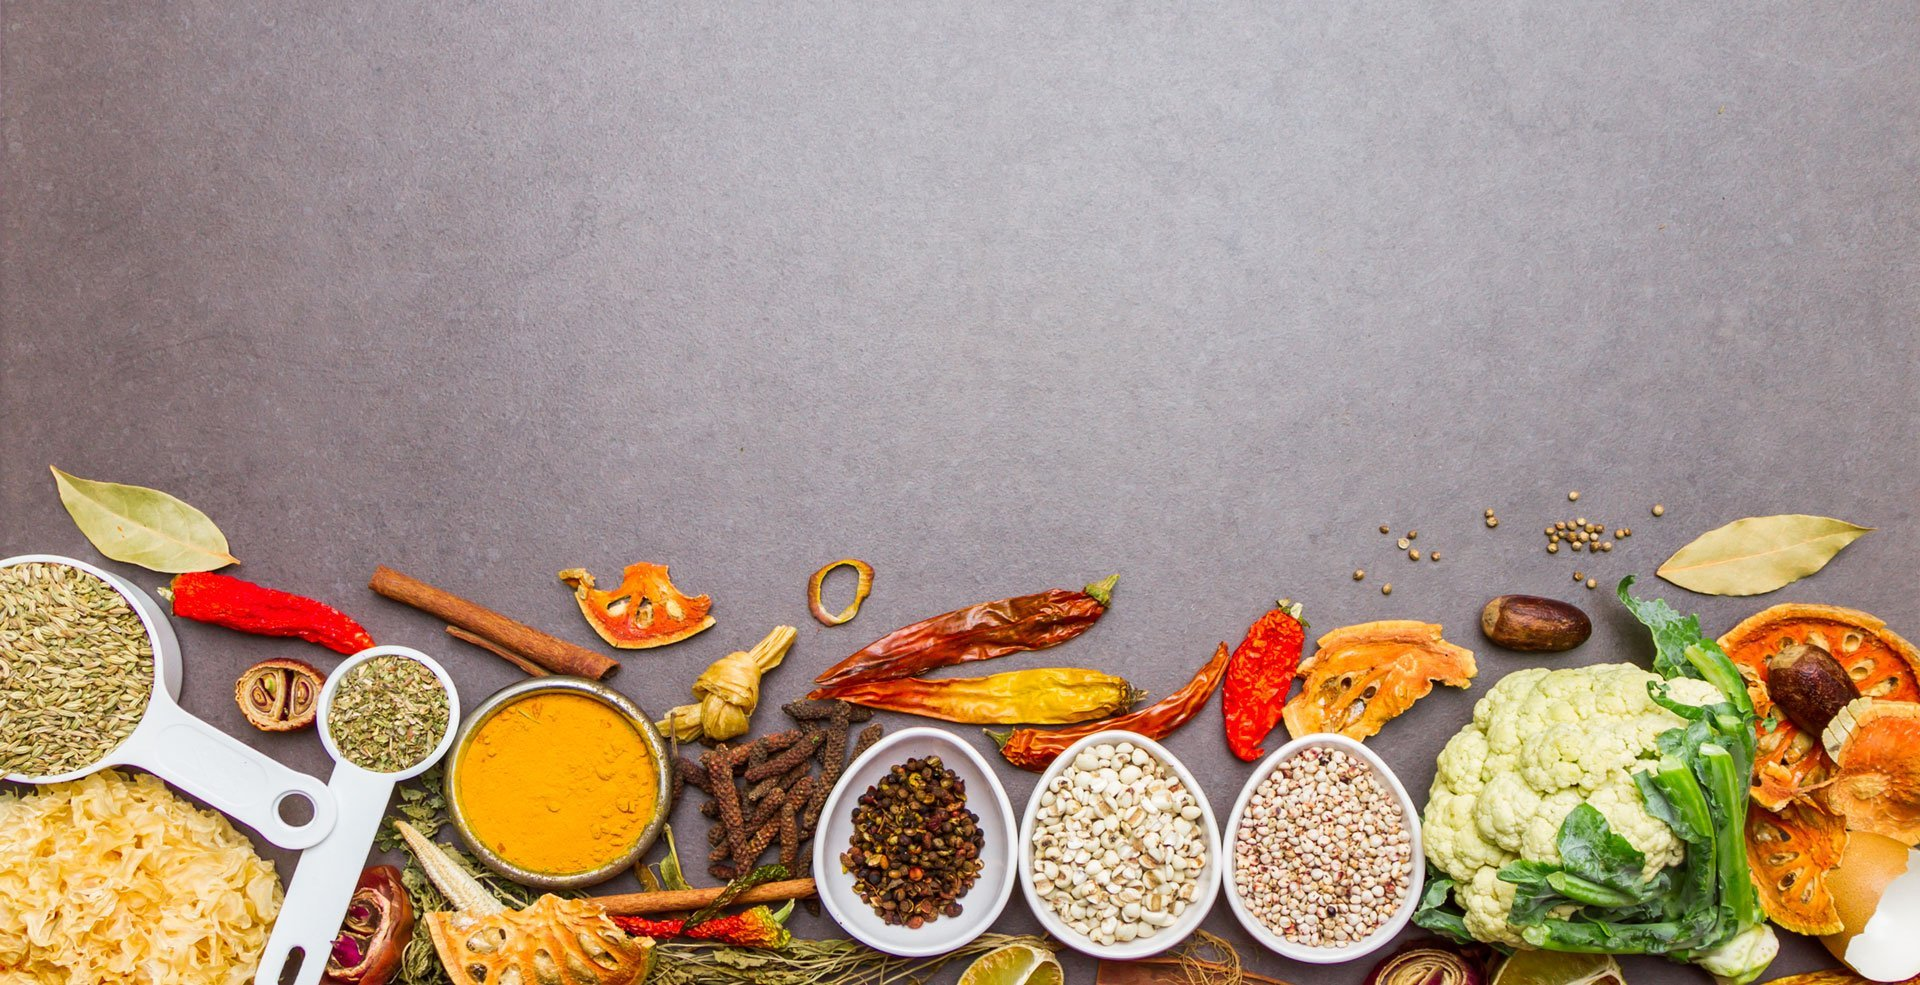 Spices and herbs on stone background, Top view indian mix spices and herbs difference ware on stone background with copy space for design spices, vegetables, herbs or foods content.